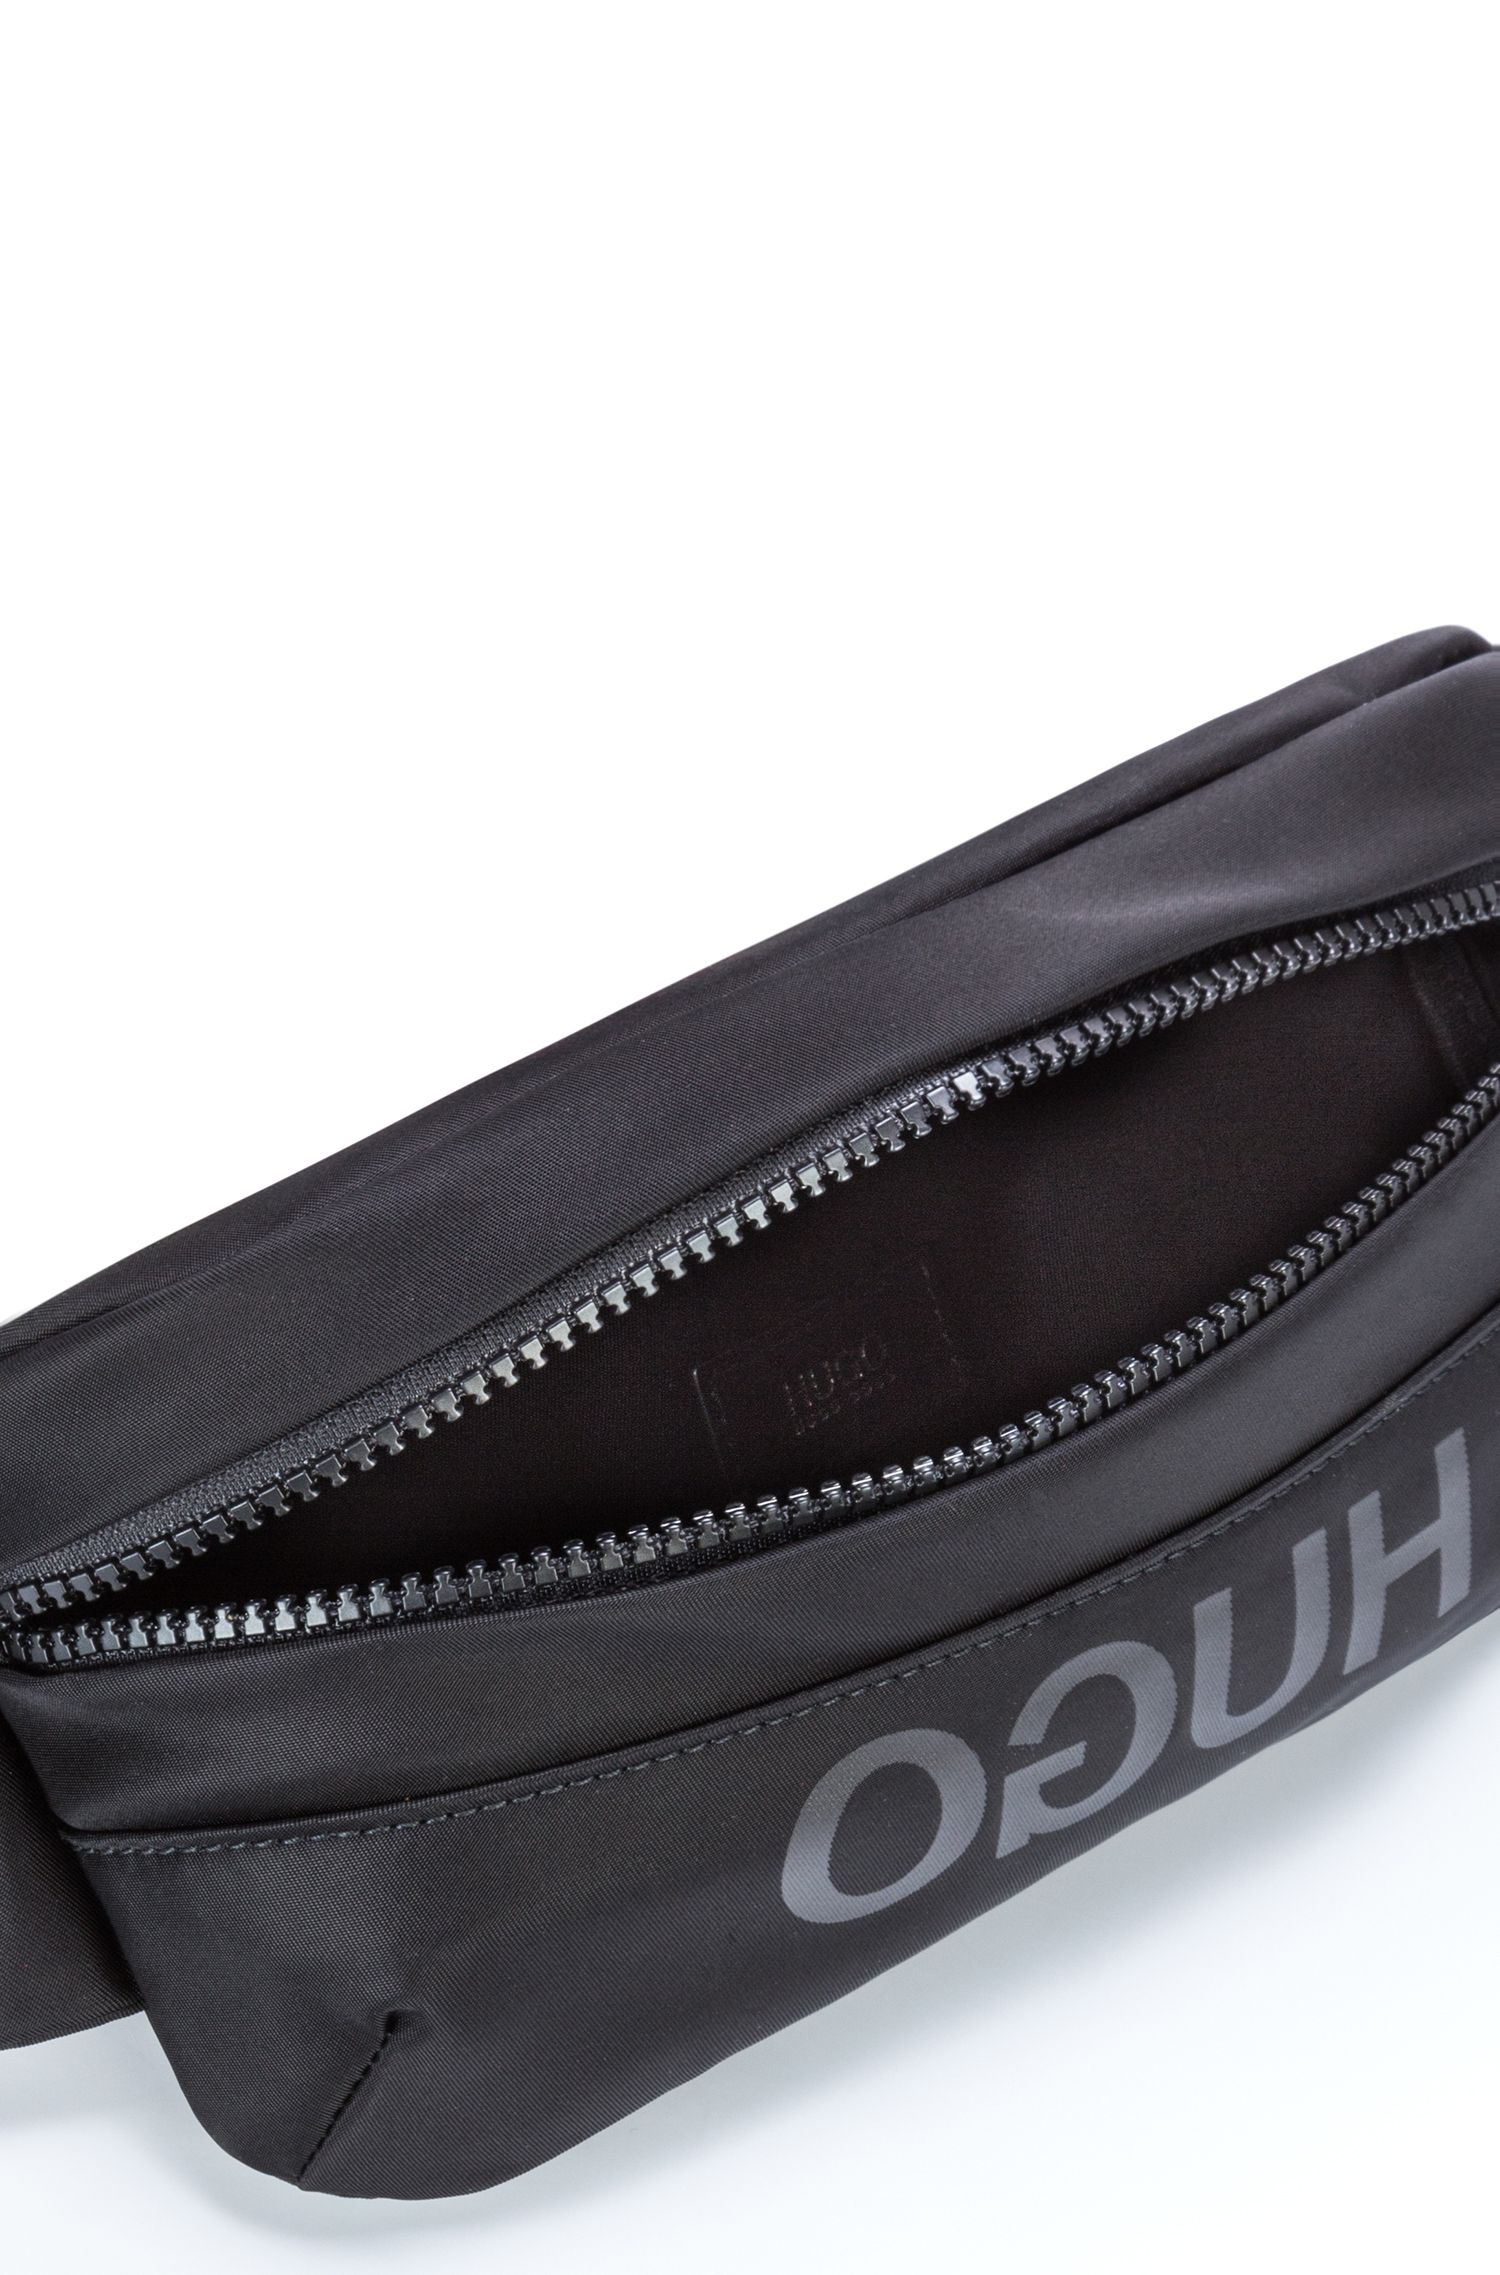 Unisex belt bag in nylon gabardine with leather trims, Black